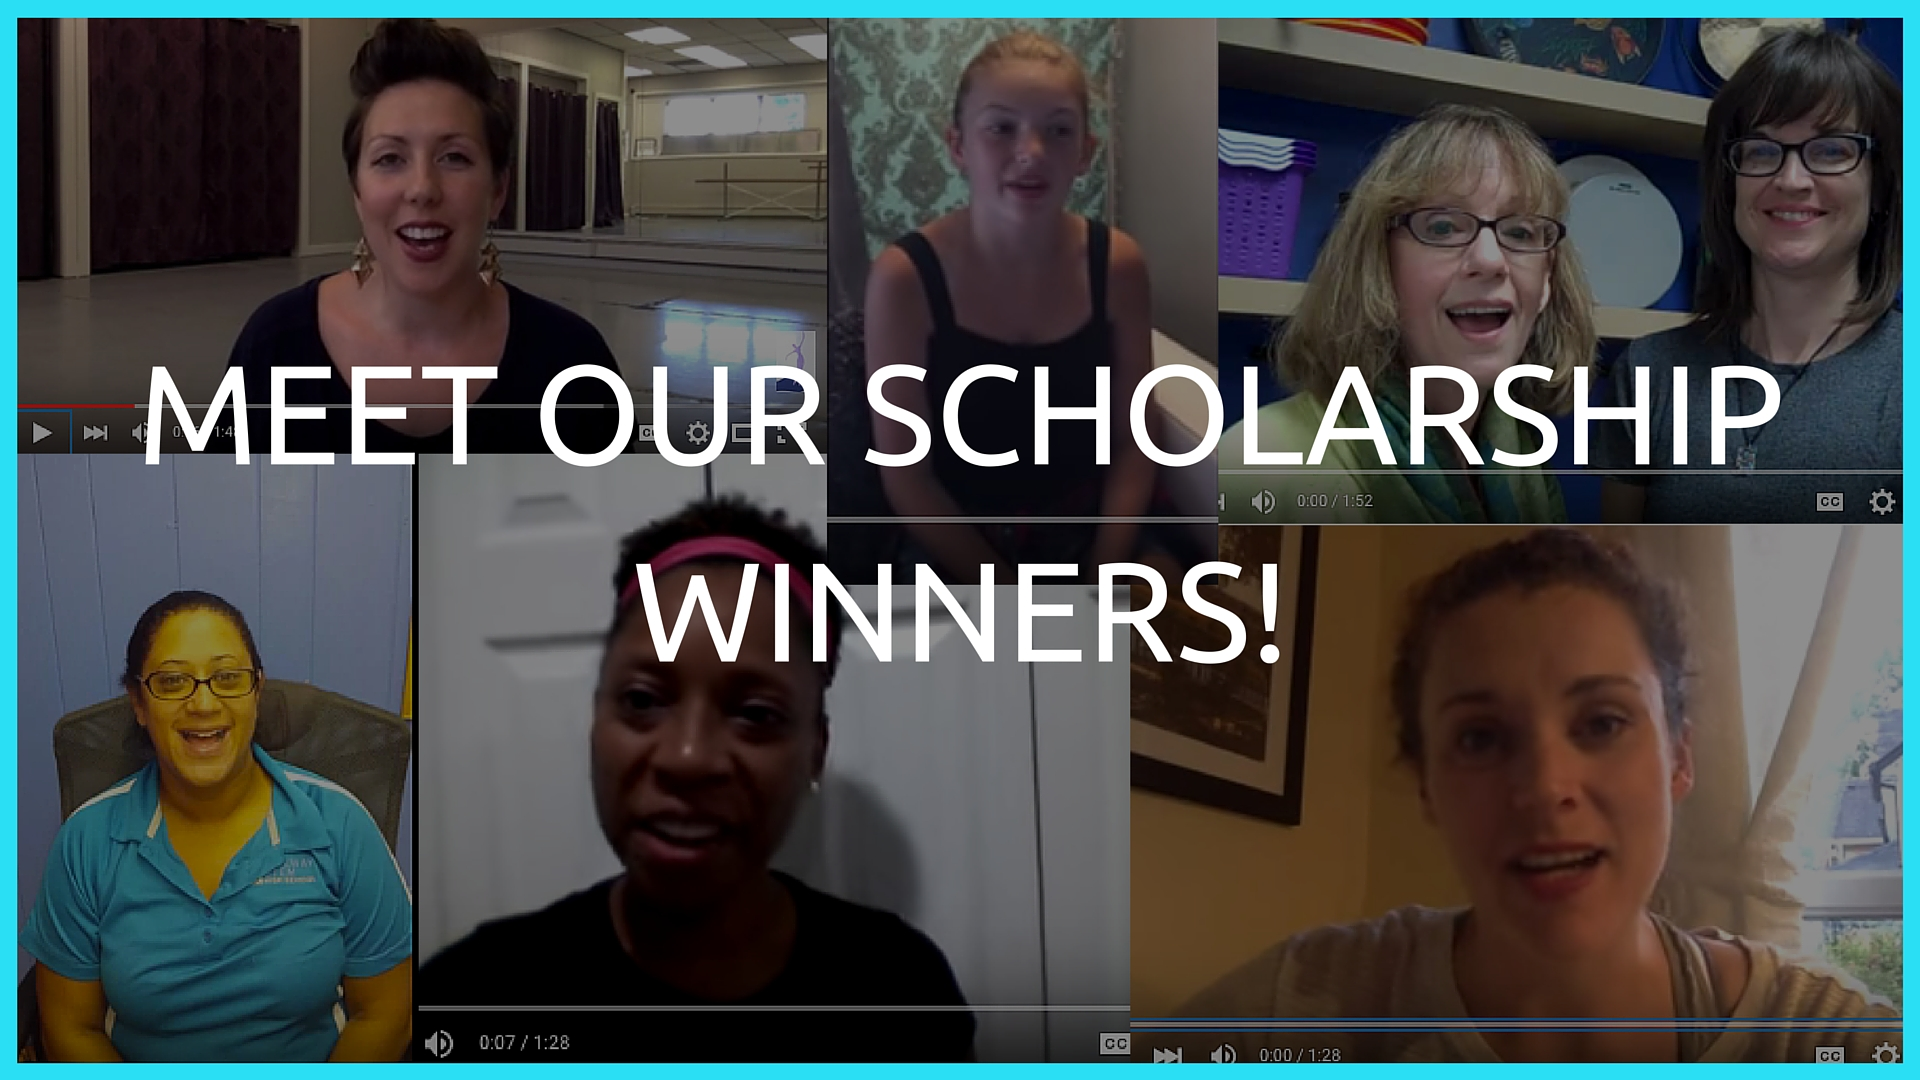 Meet Our Scholarship Winners!